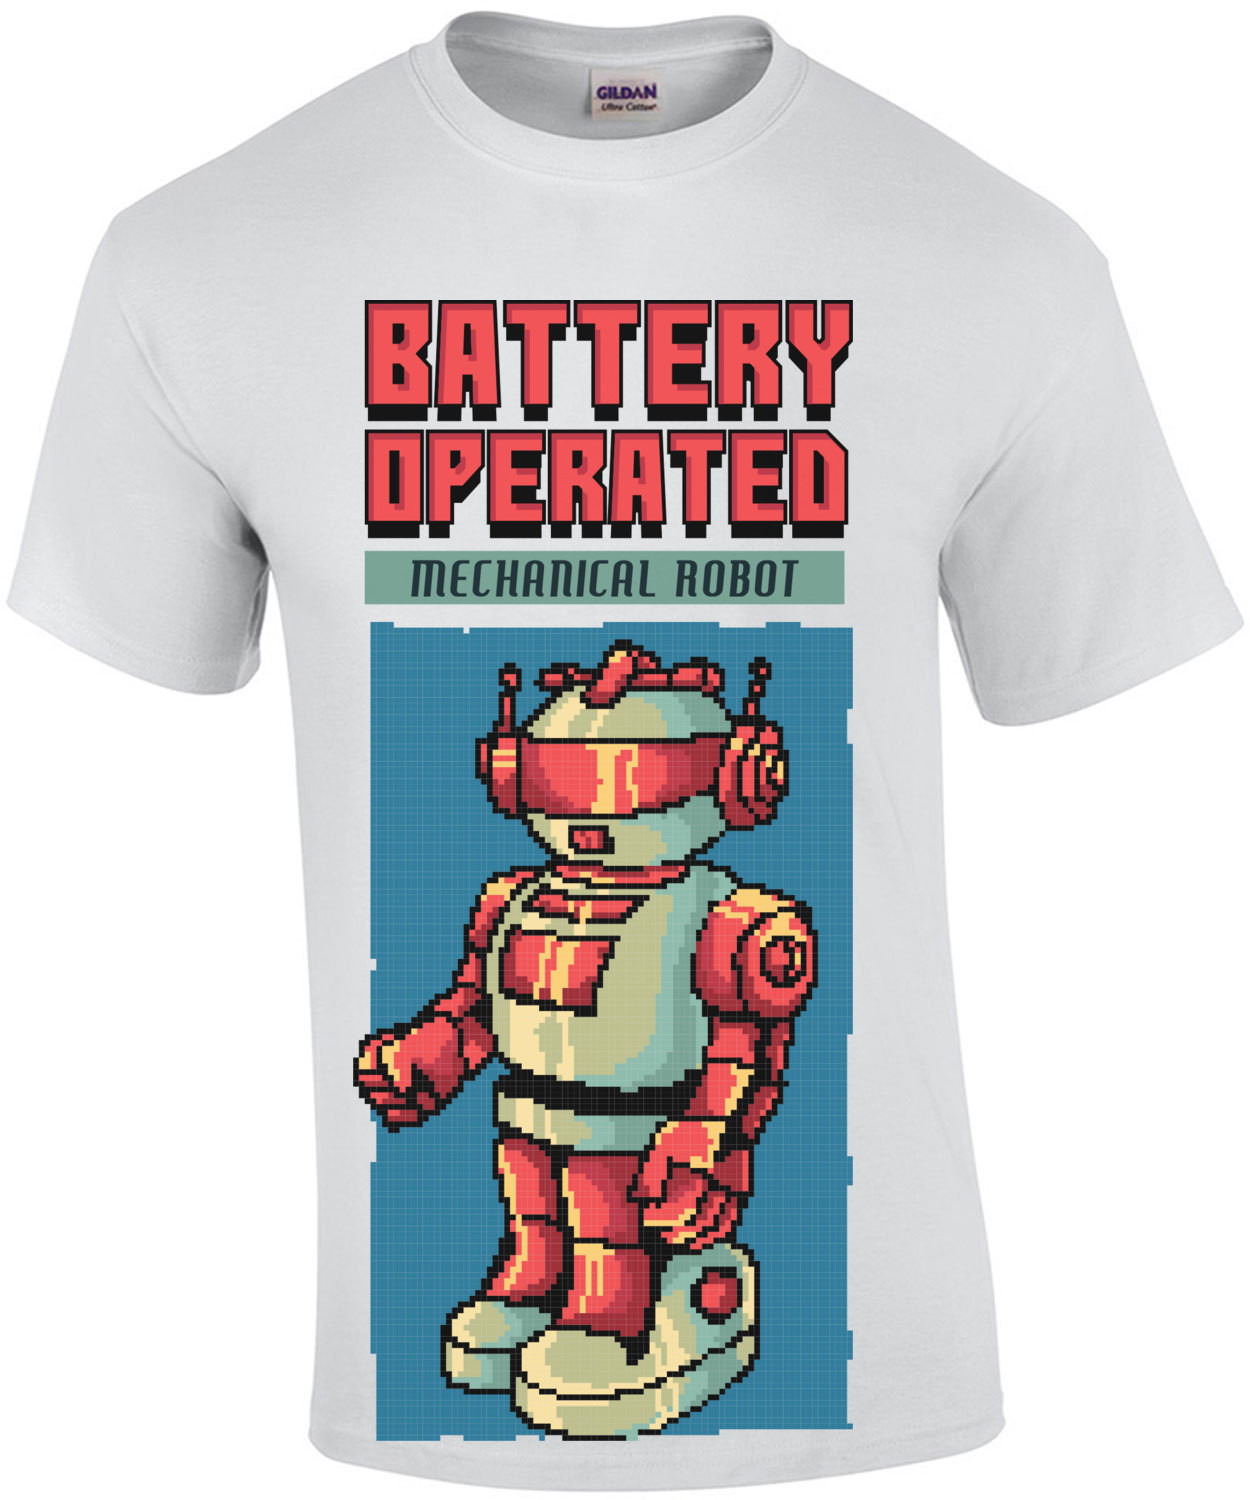 Battery Operate Mechanical Robot Retro Toy T-Shirt